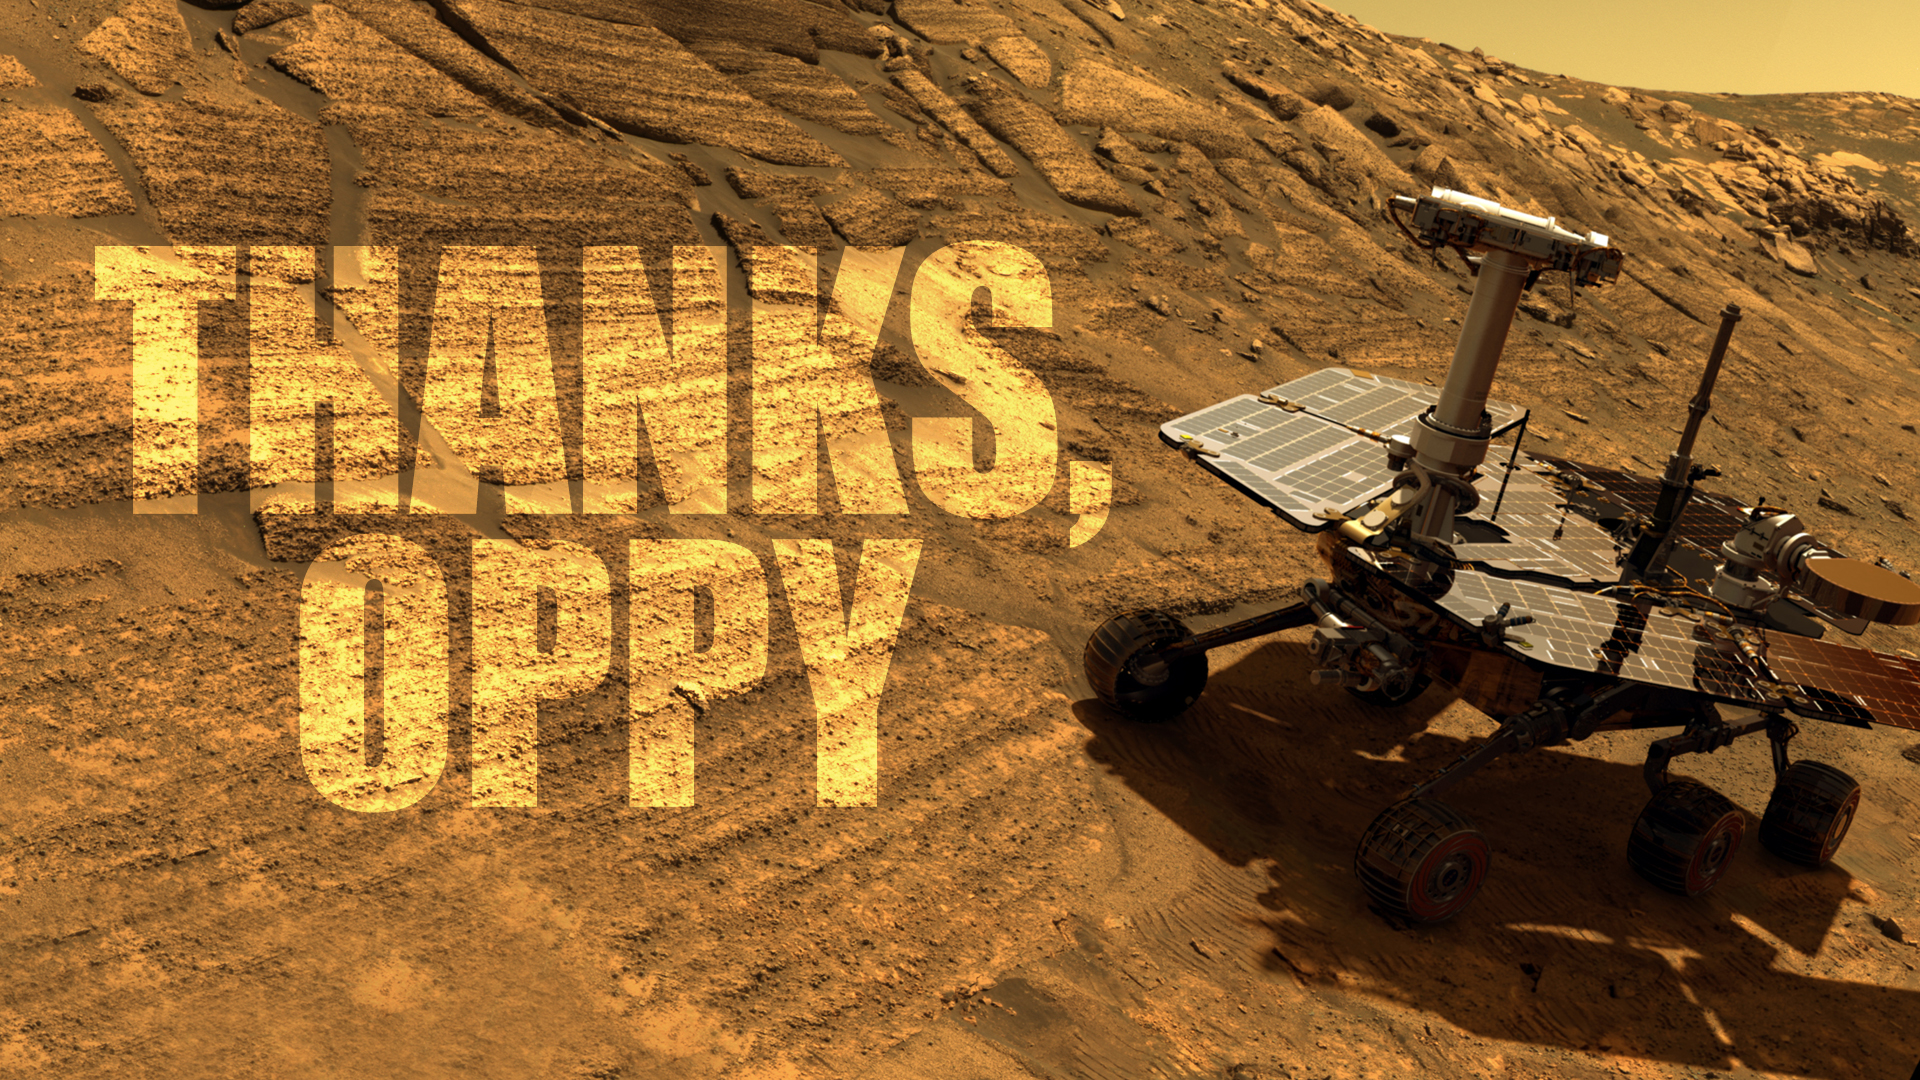 2019-02-14 Opportunity 3